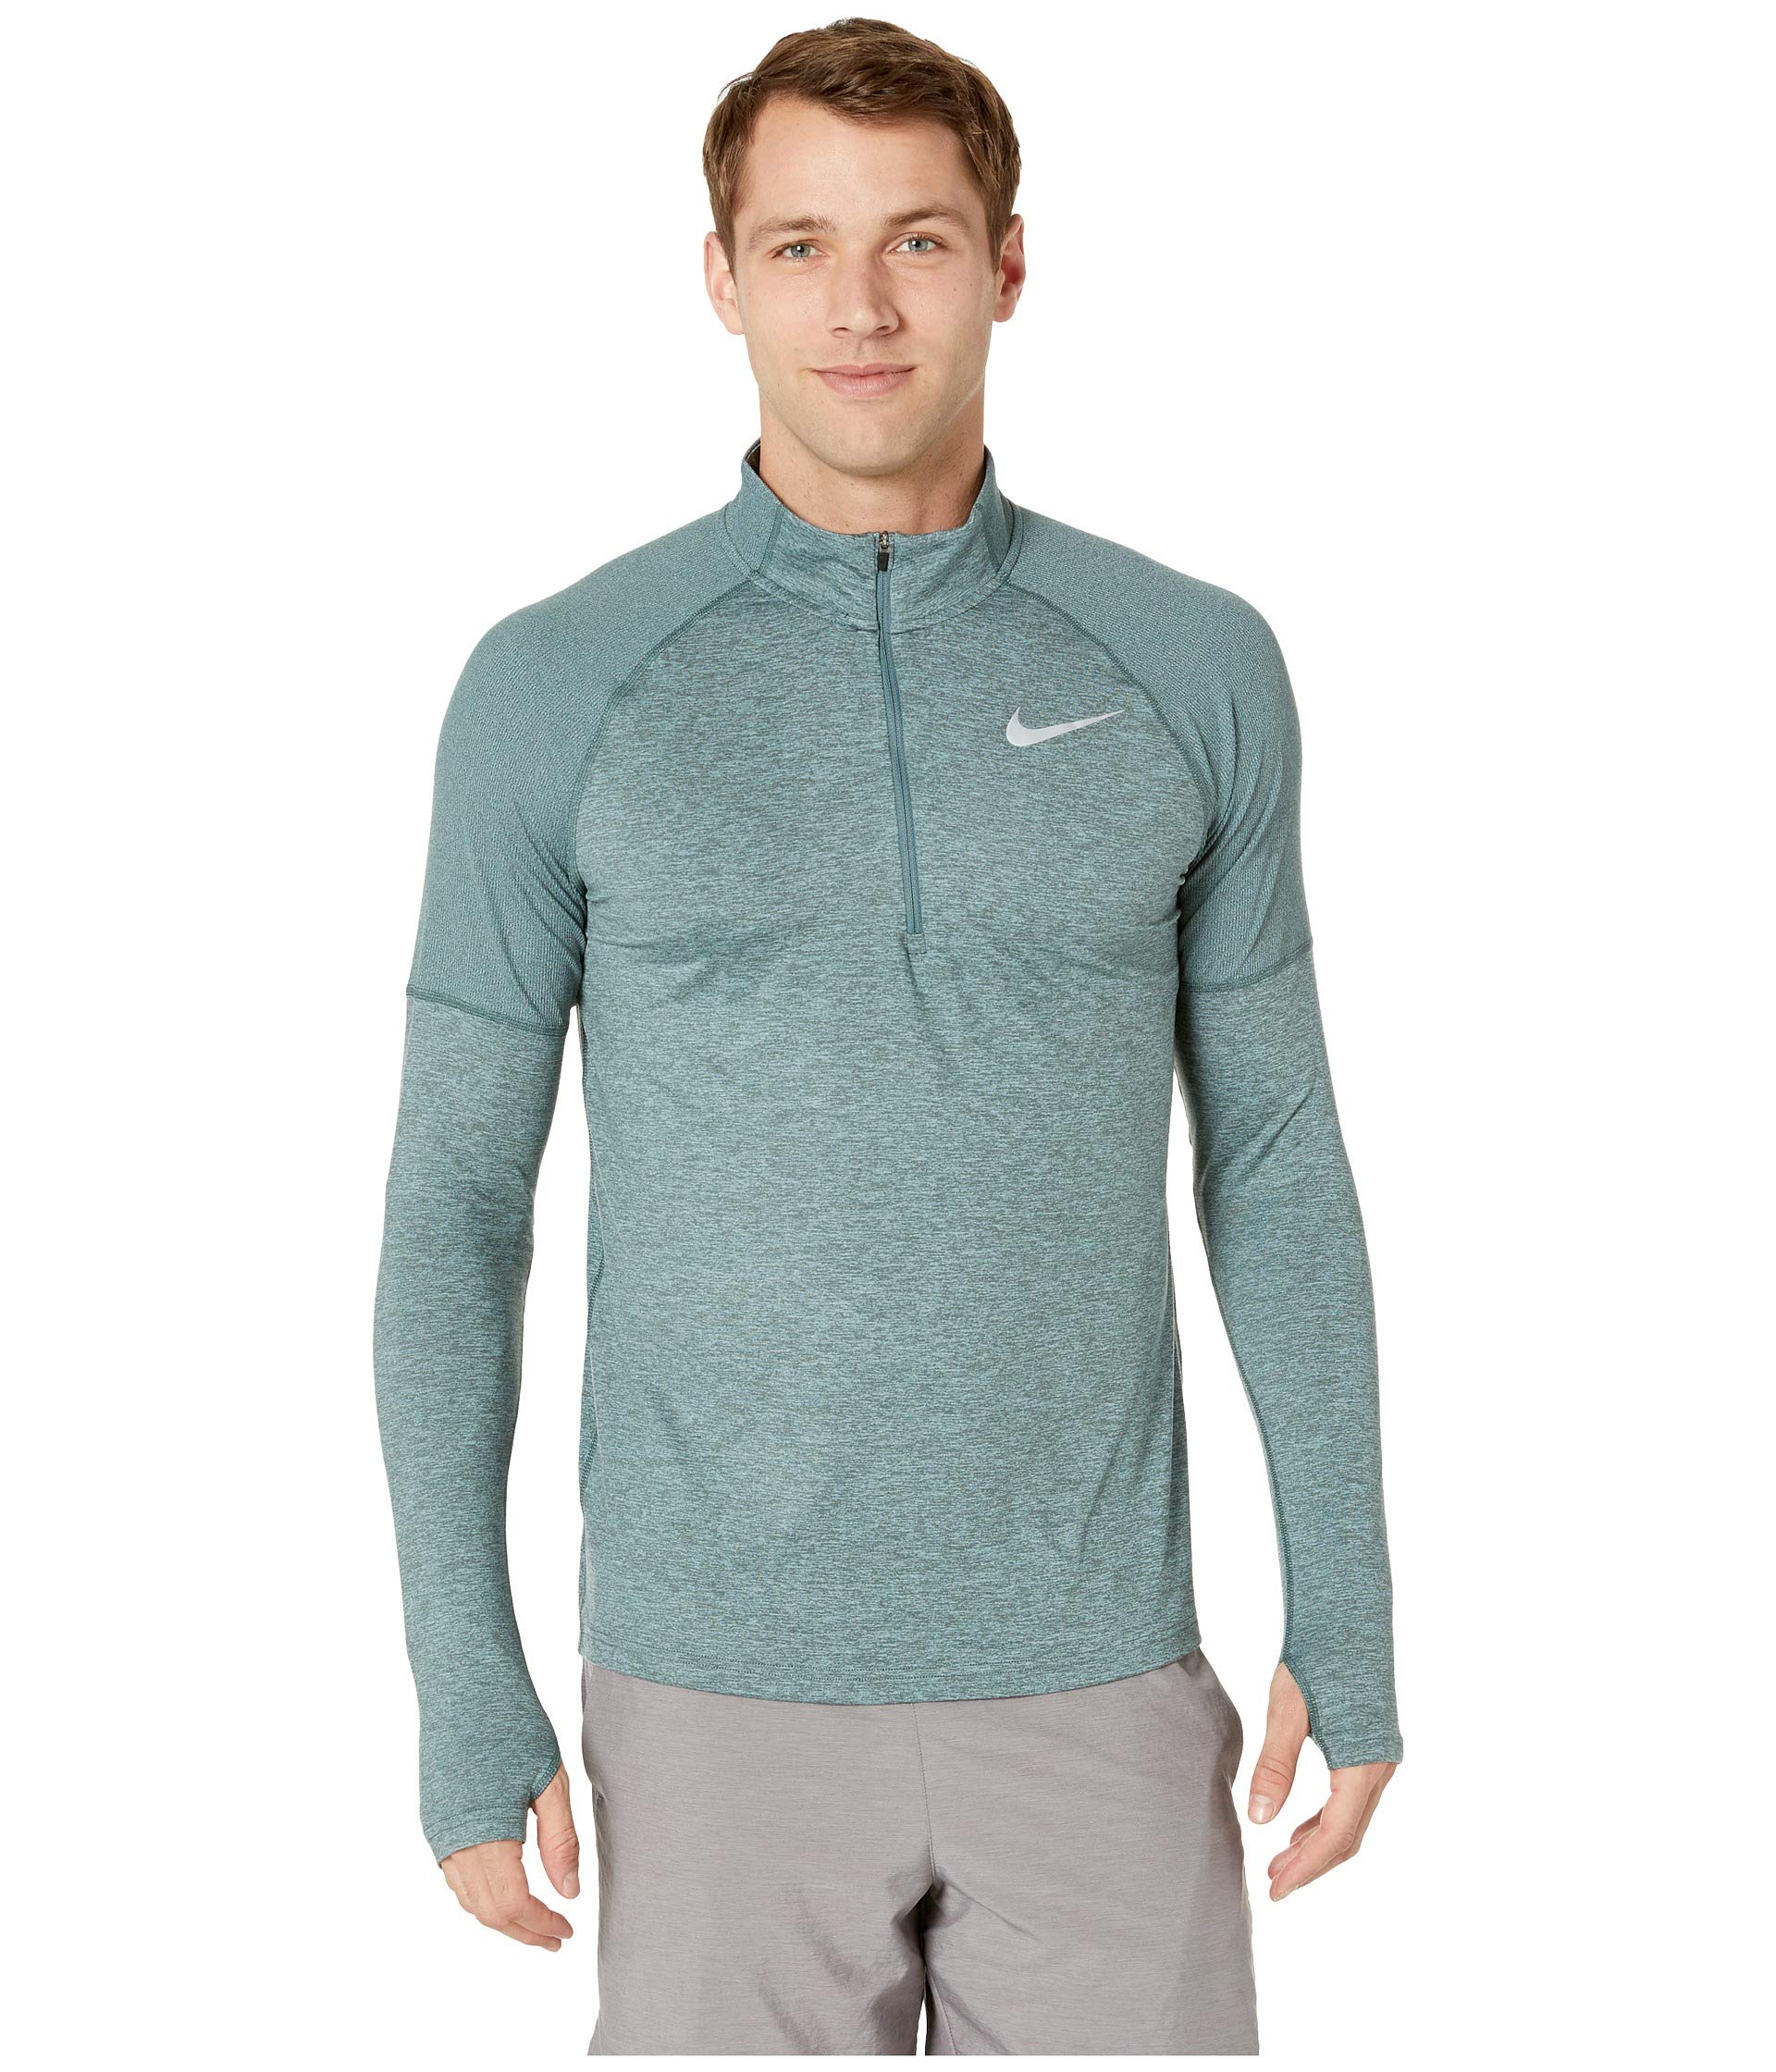 Nike Men's Element 1/2 Zip Running Top Hasta/Aviator Grey/Reflective Silver Size Small by Nike (Image #1)